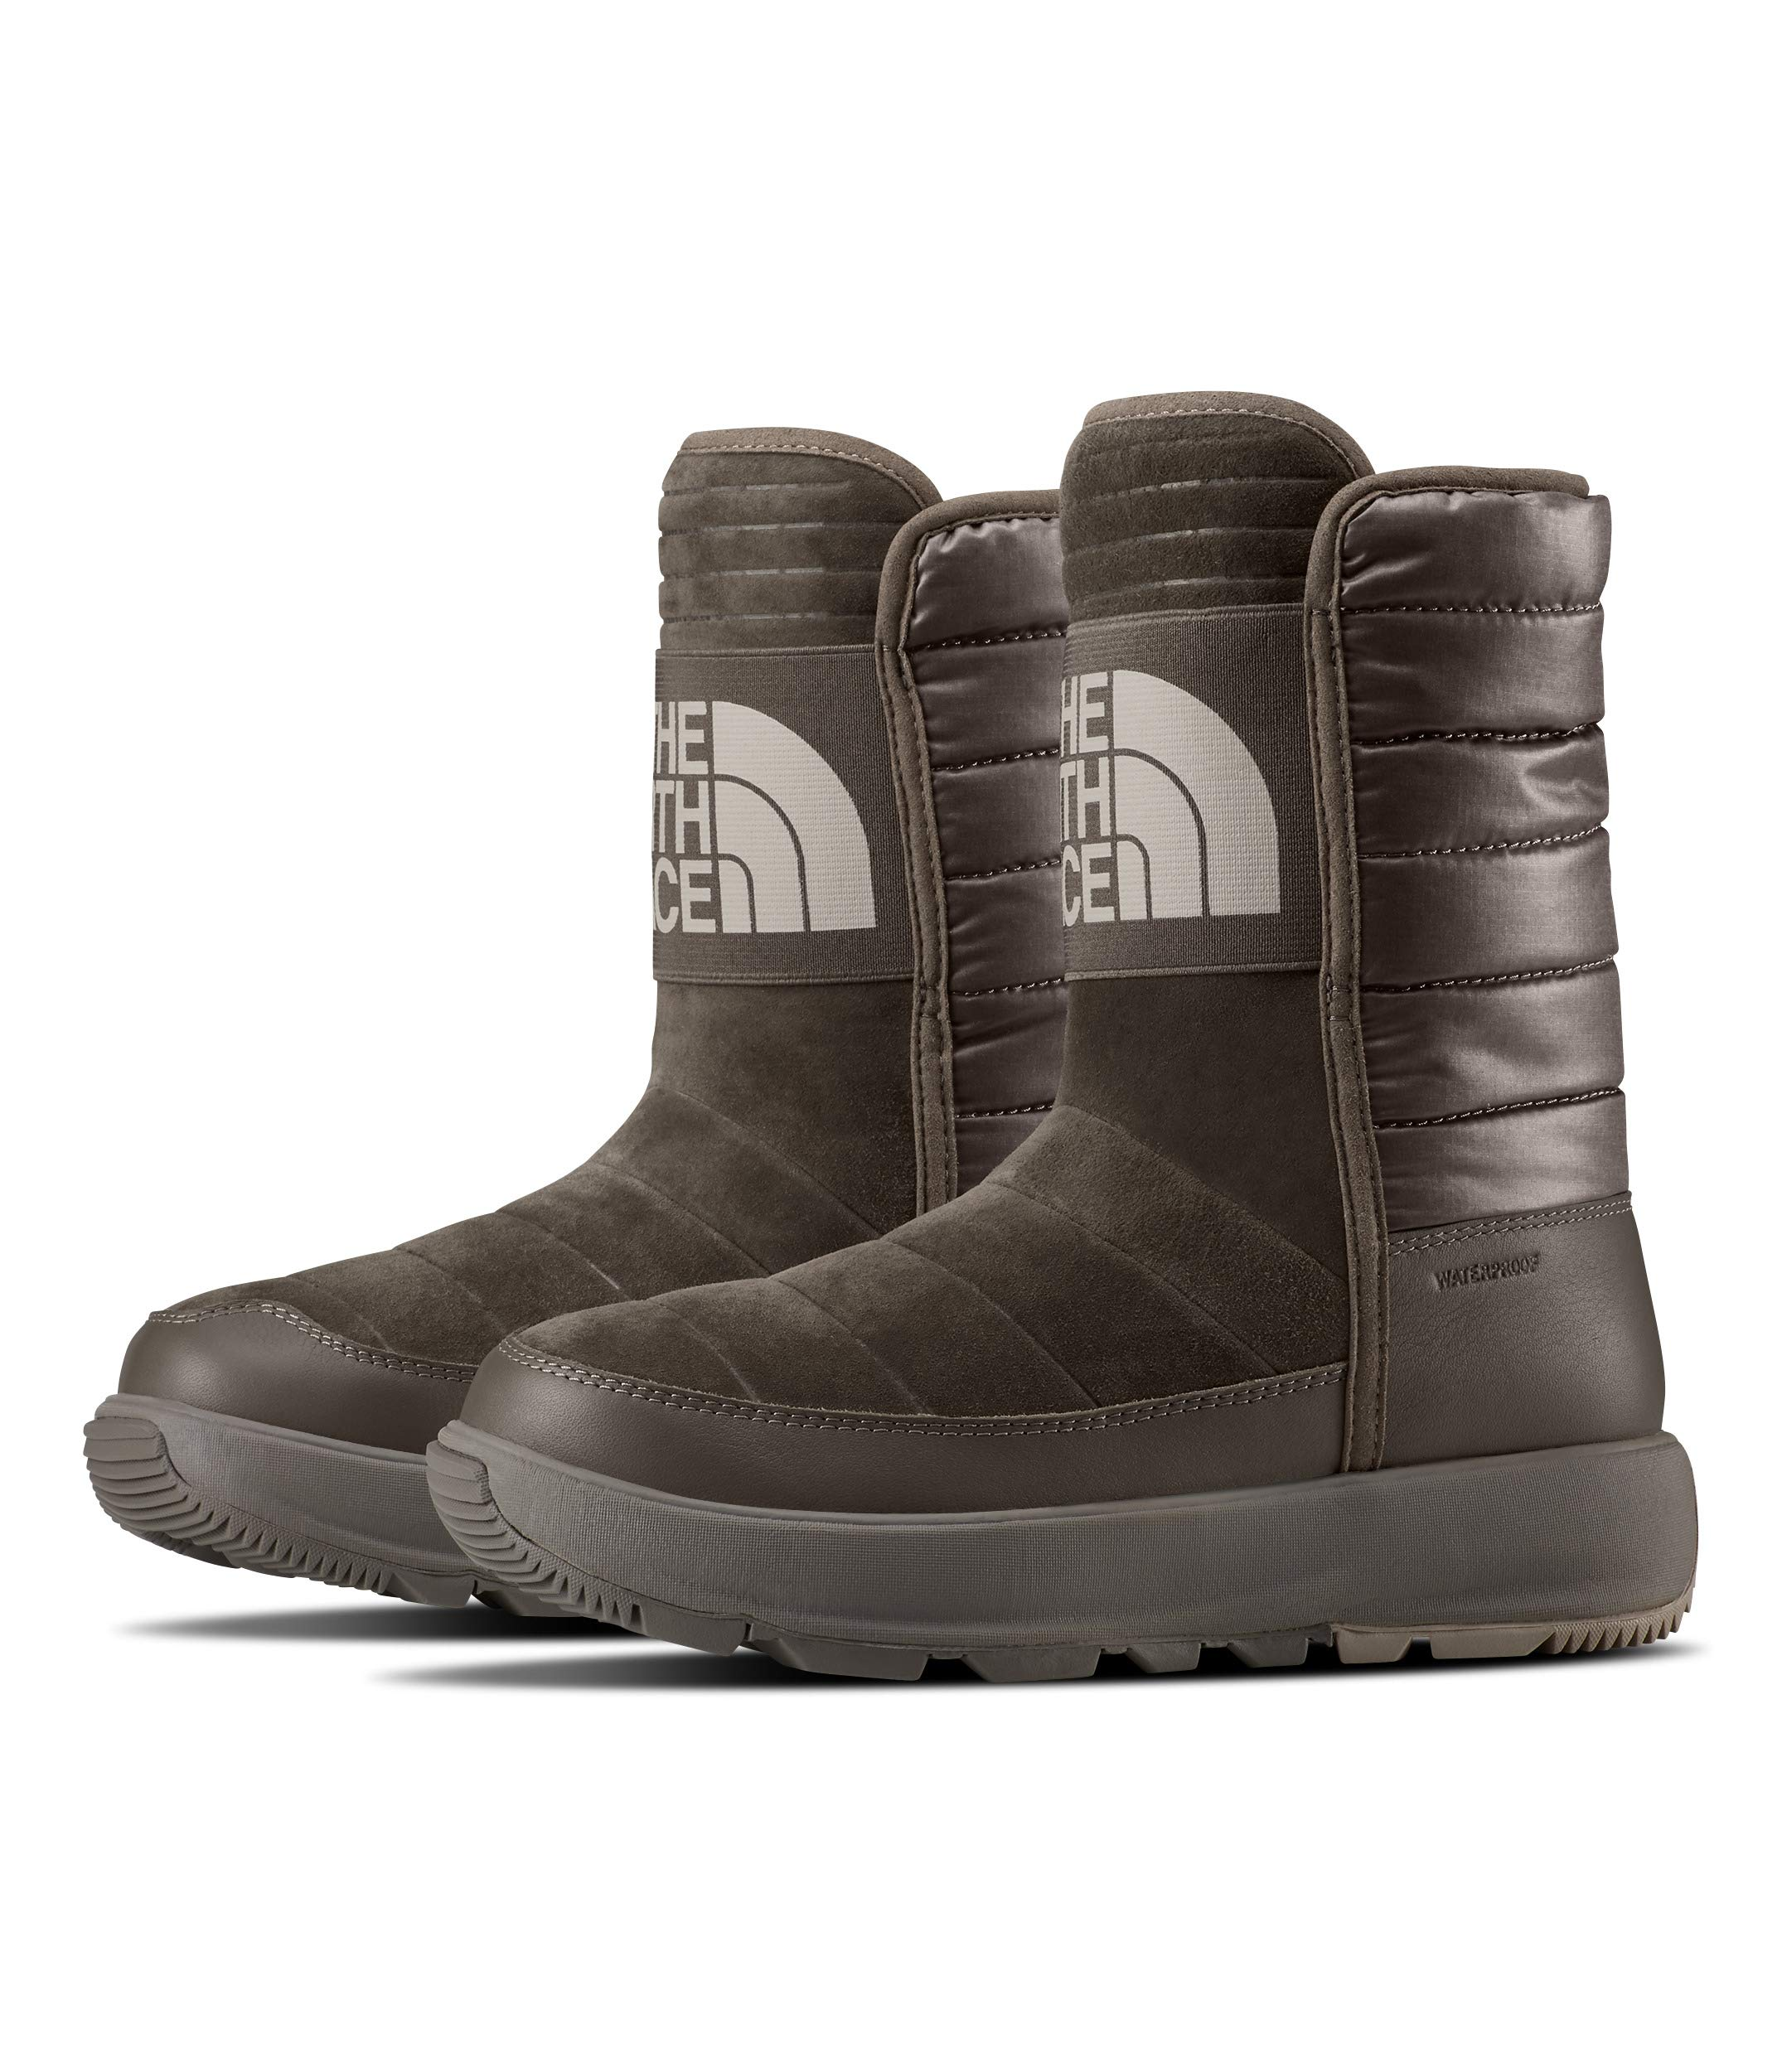 The North Face Women's Ozone Park Winter Pull-On Boot by The North Face